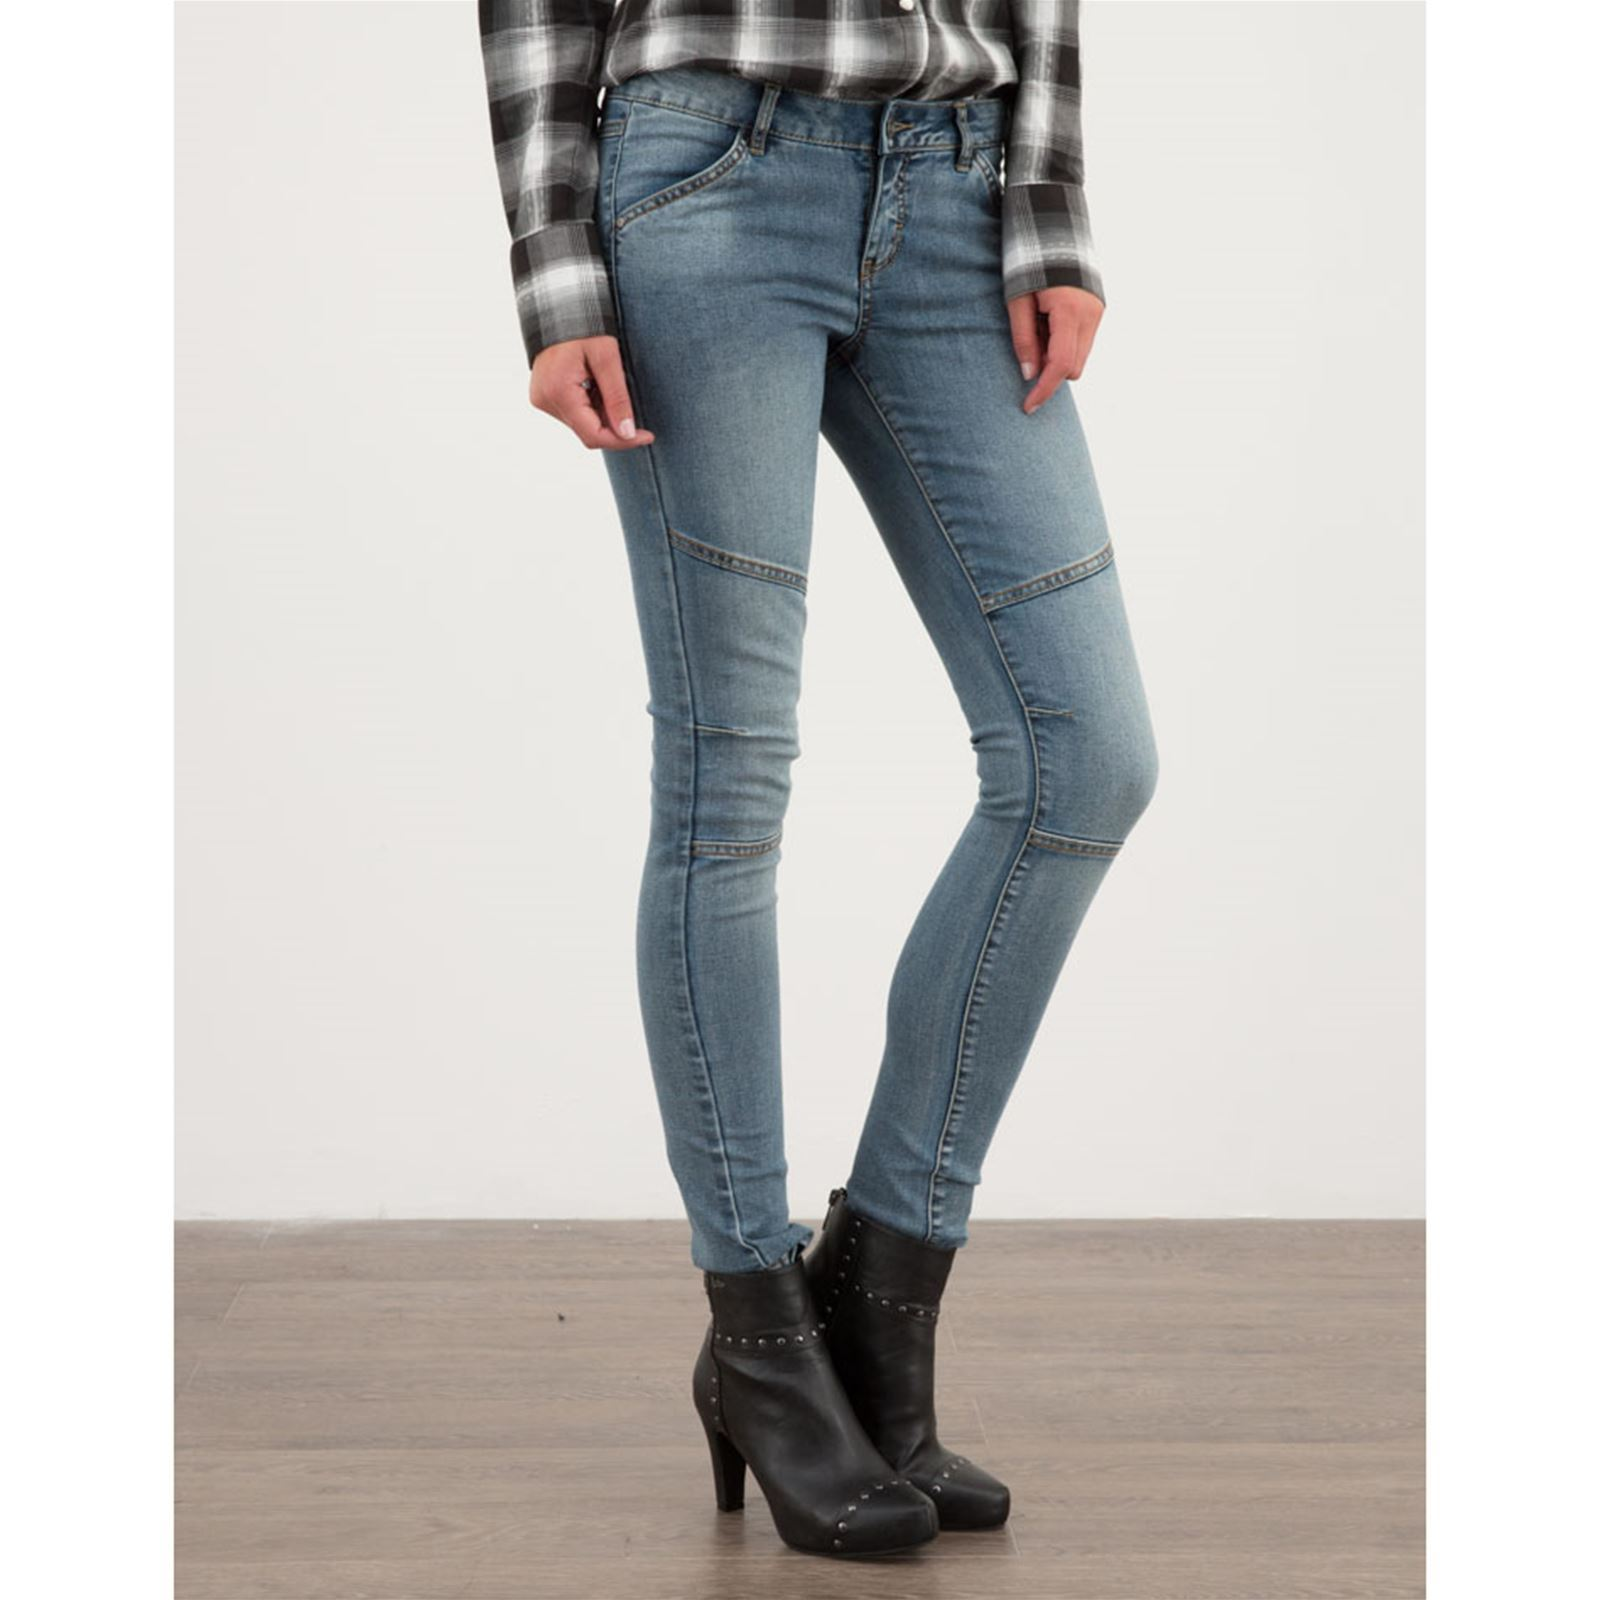 LPB WOMAN Jean skinny - denim bleu